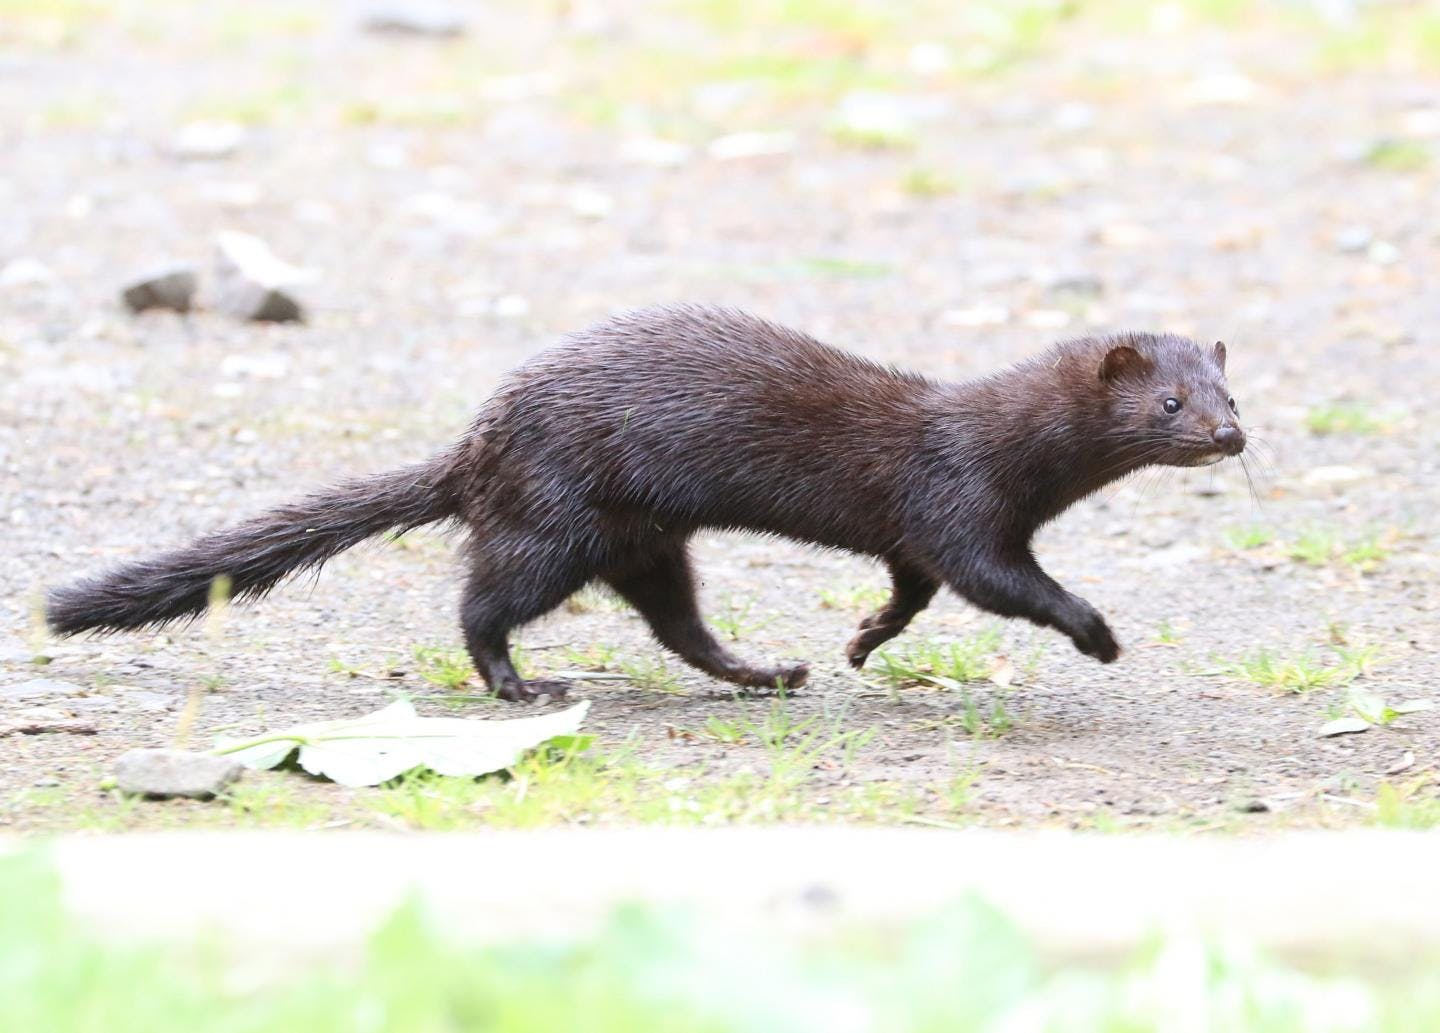 An American mink walking in a national park